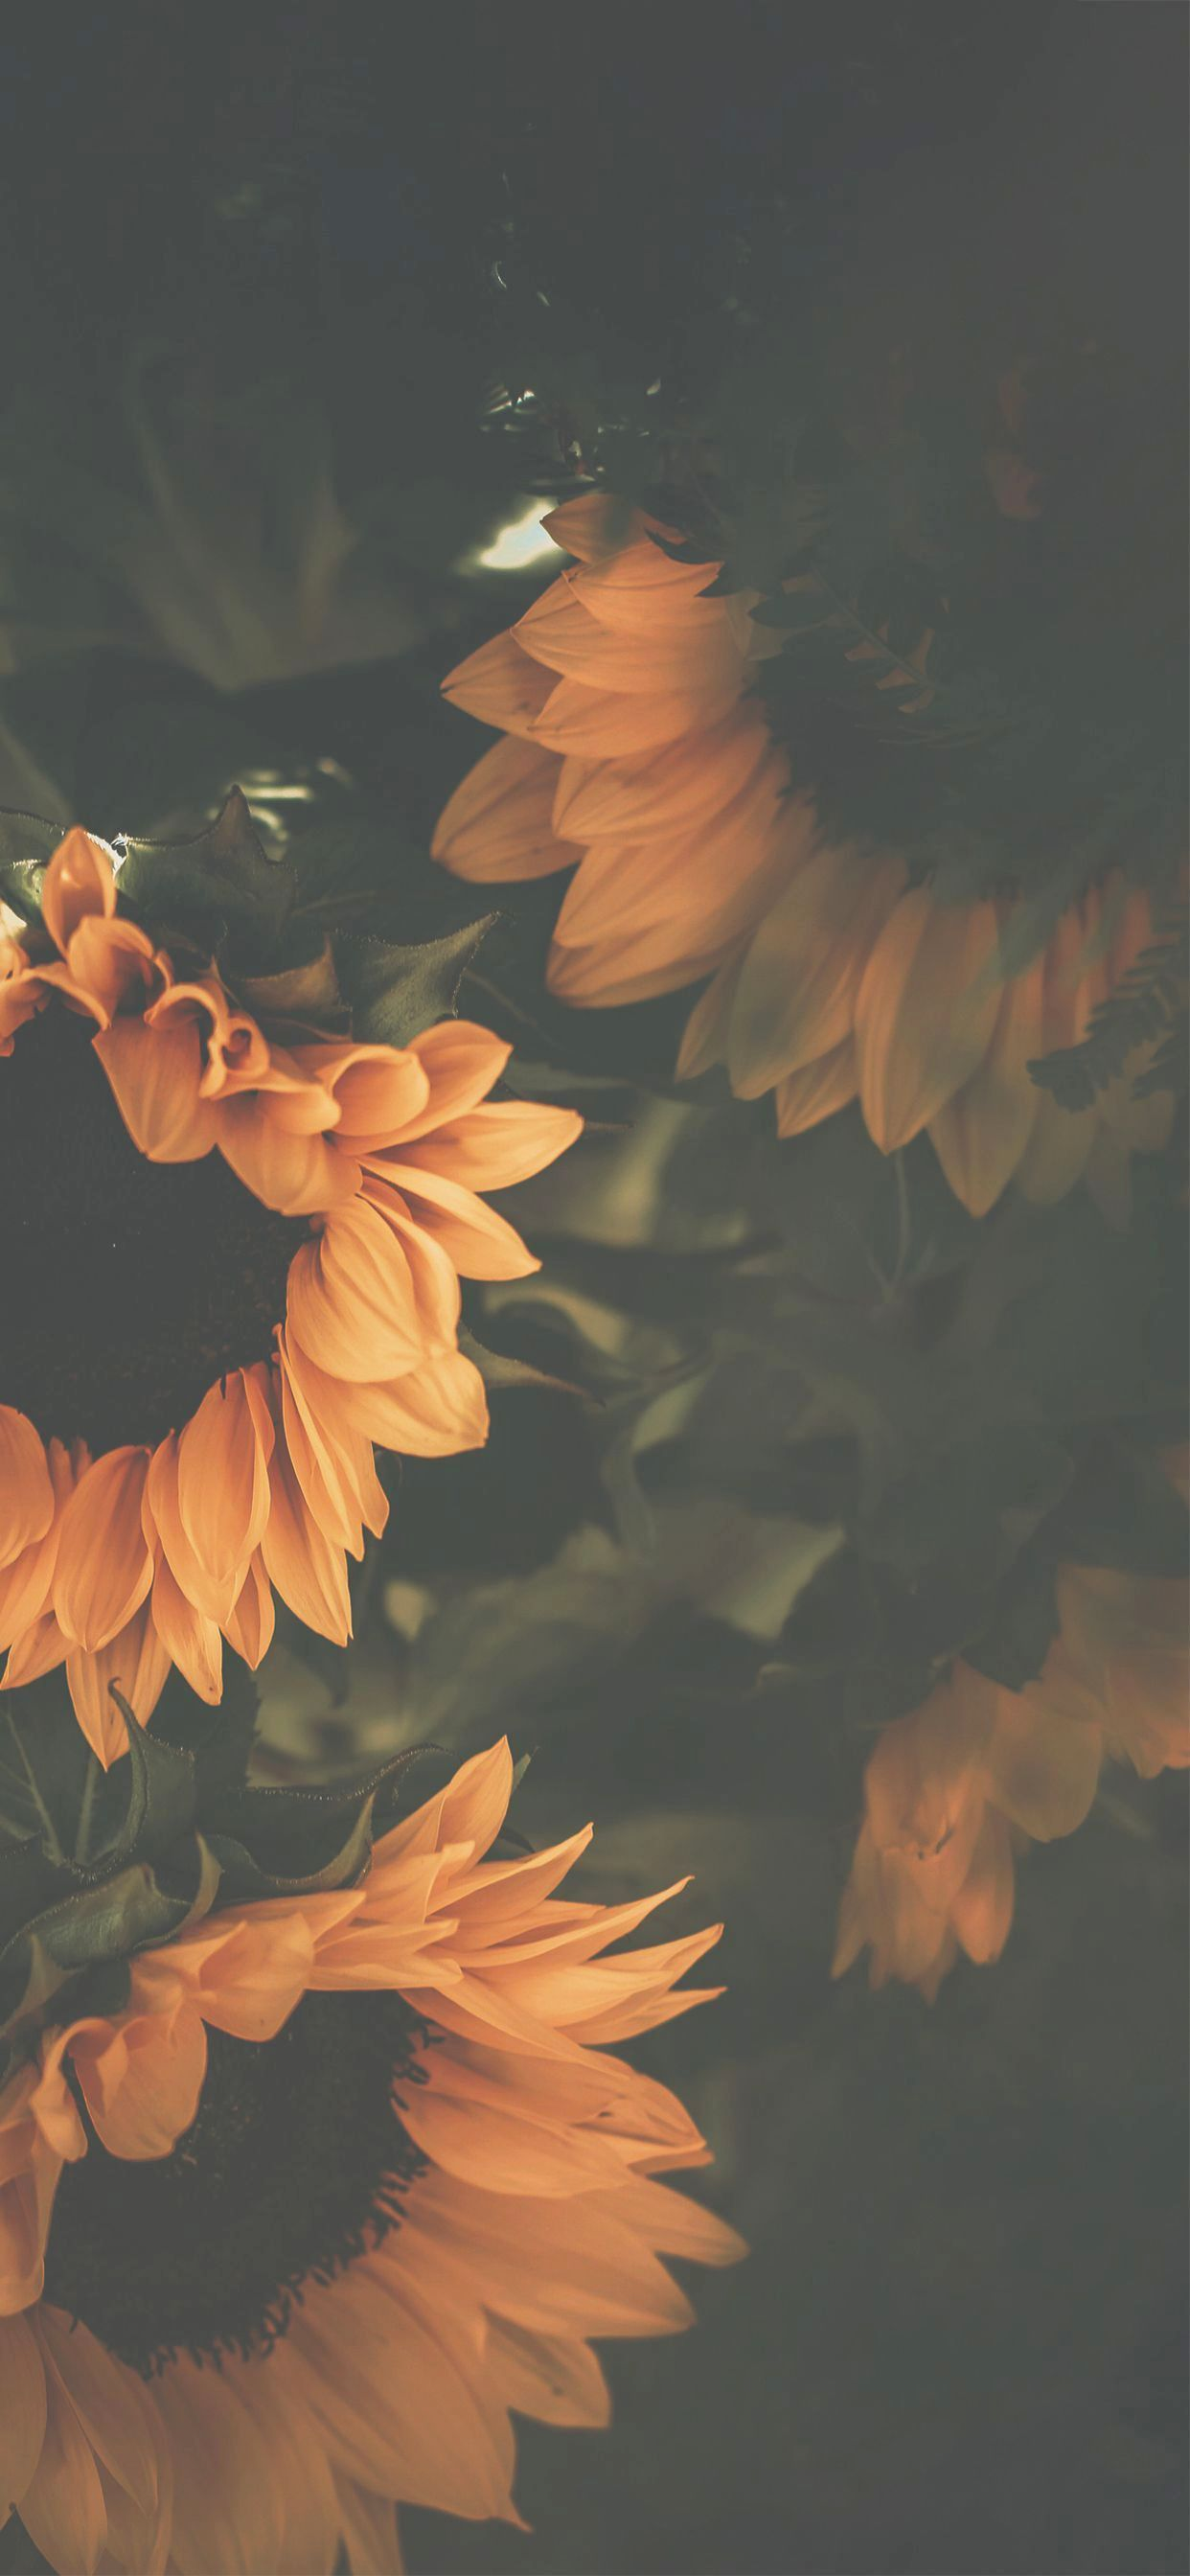 Wallpapers Iphone 7 Plus Pinterest Versus Iphone Background Tumblr Flowers It Is Ga Sunflower Iphone Wallpaper Backgrounds Phone Wallpapers Sunflower Wallpaper